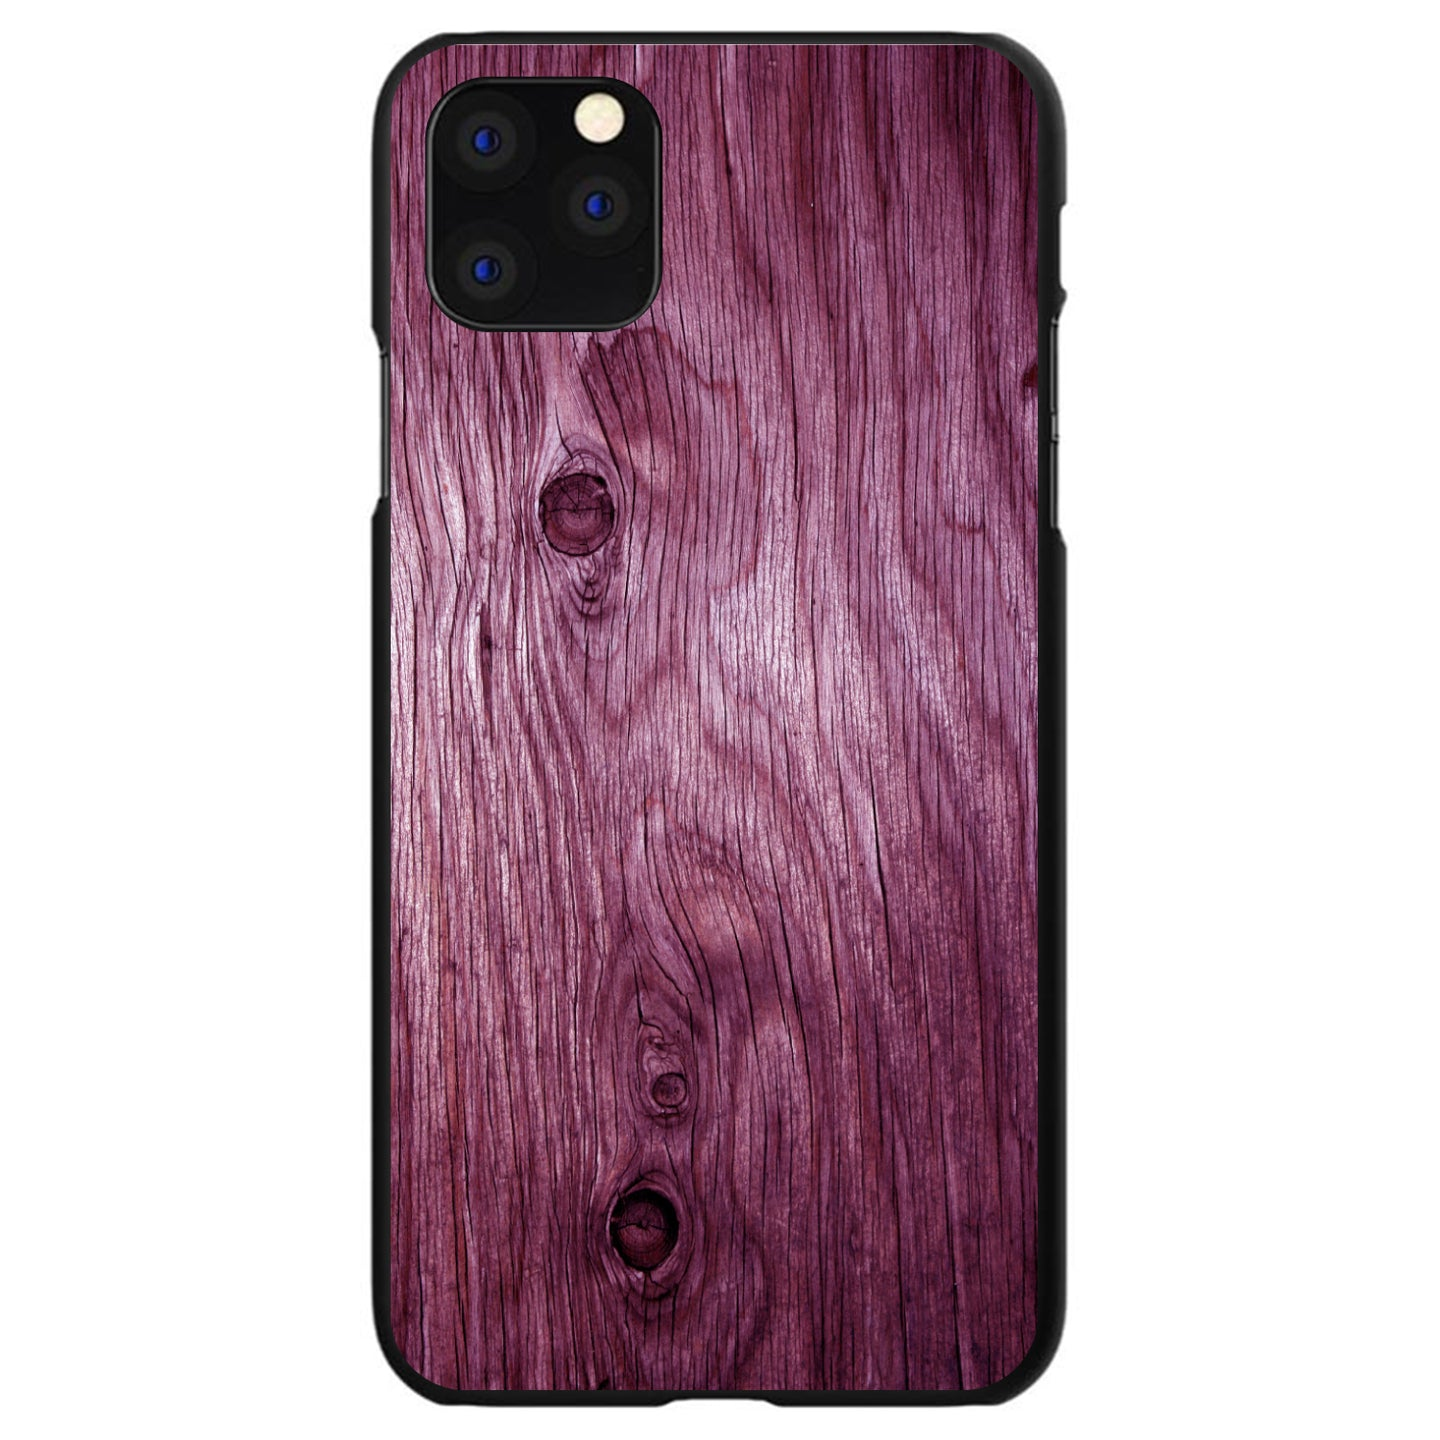 DistinctInk® Hard Plastic Snap-On Case for Apple iPhone - Fuchsia Weathered Wood Grain Print